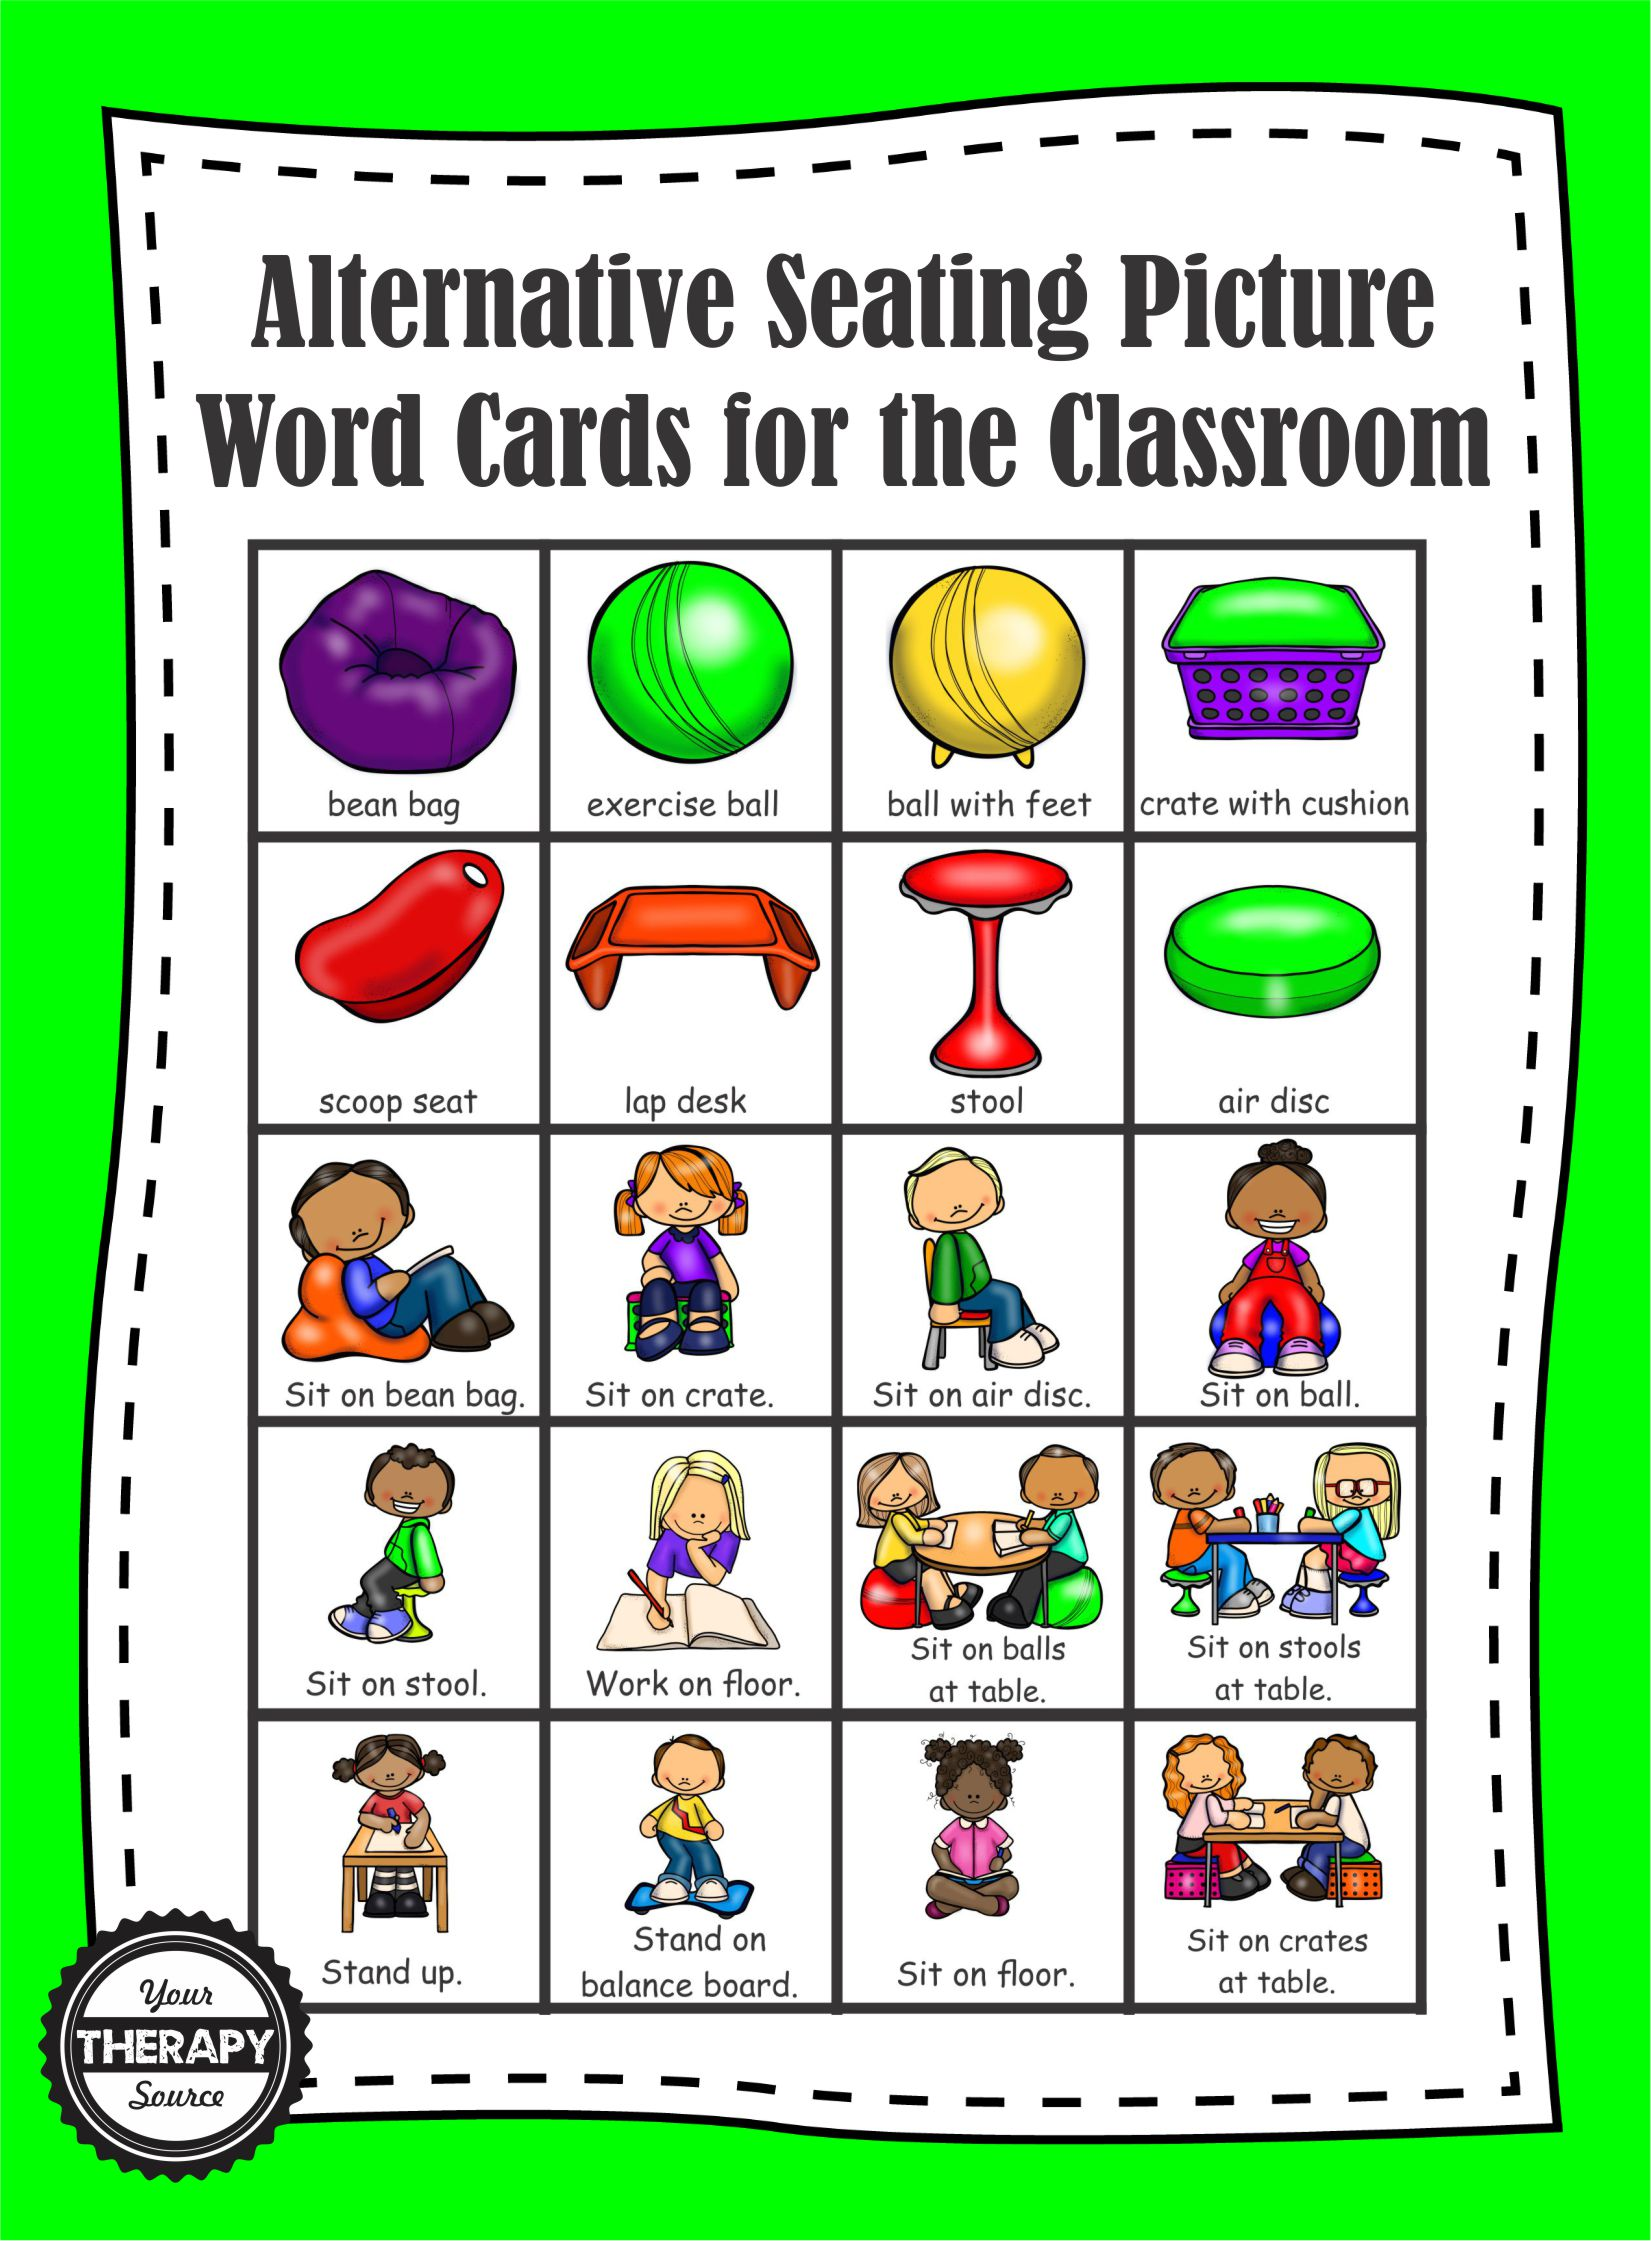 20 Alternative Seating Picture Word Cards Your Therapy Source